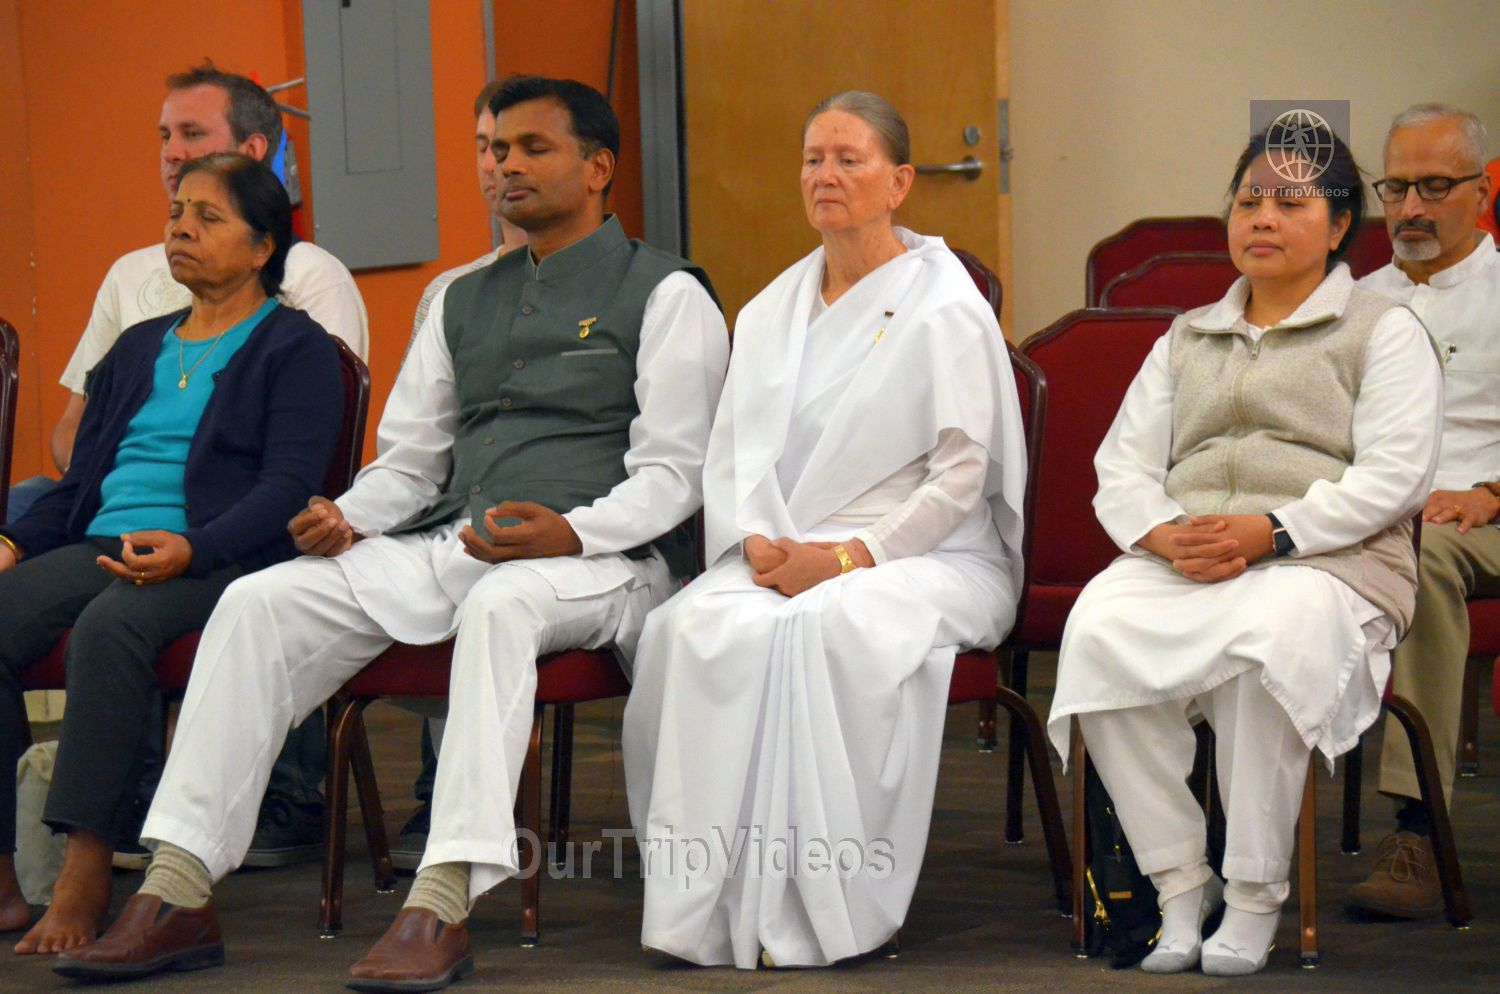 International Yoga Day at ICC, Milpitas, CA, USA - Picture 20 of 25